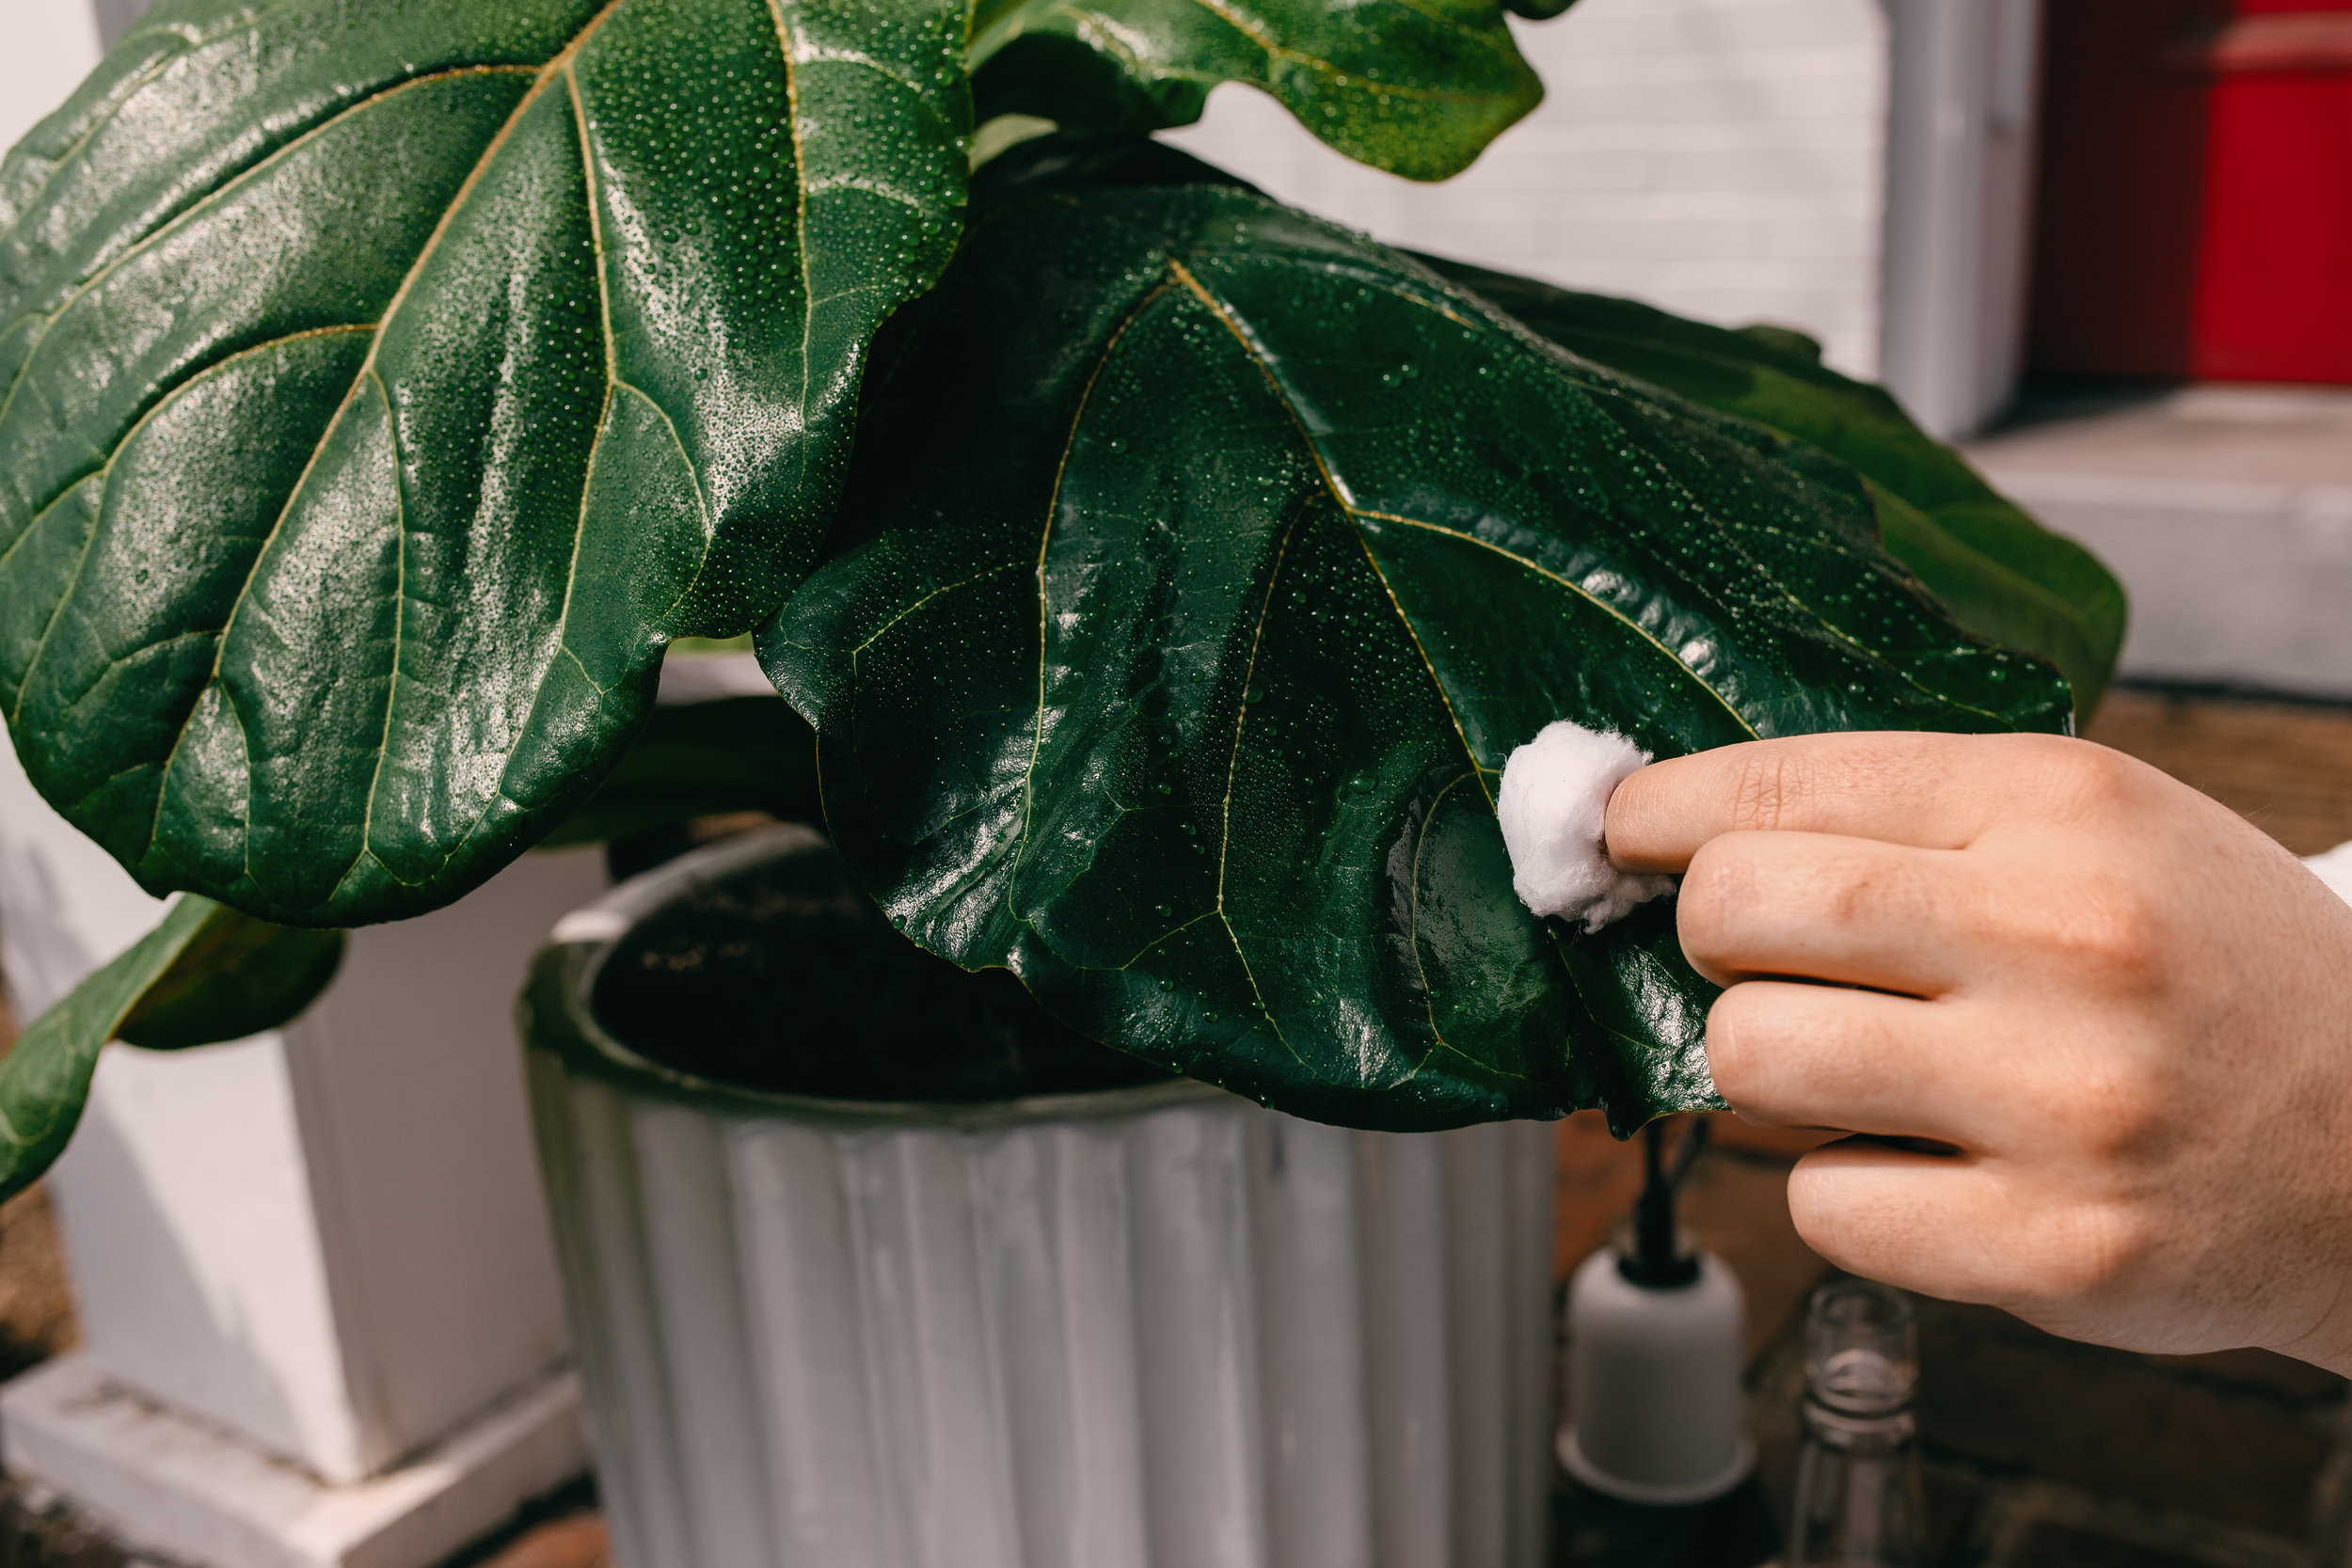 3. Wipe the infected area again with a clean, dry cotton ball to remove any pests or residue from the leaf.